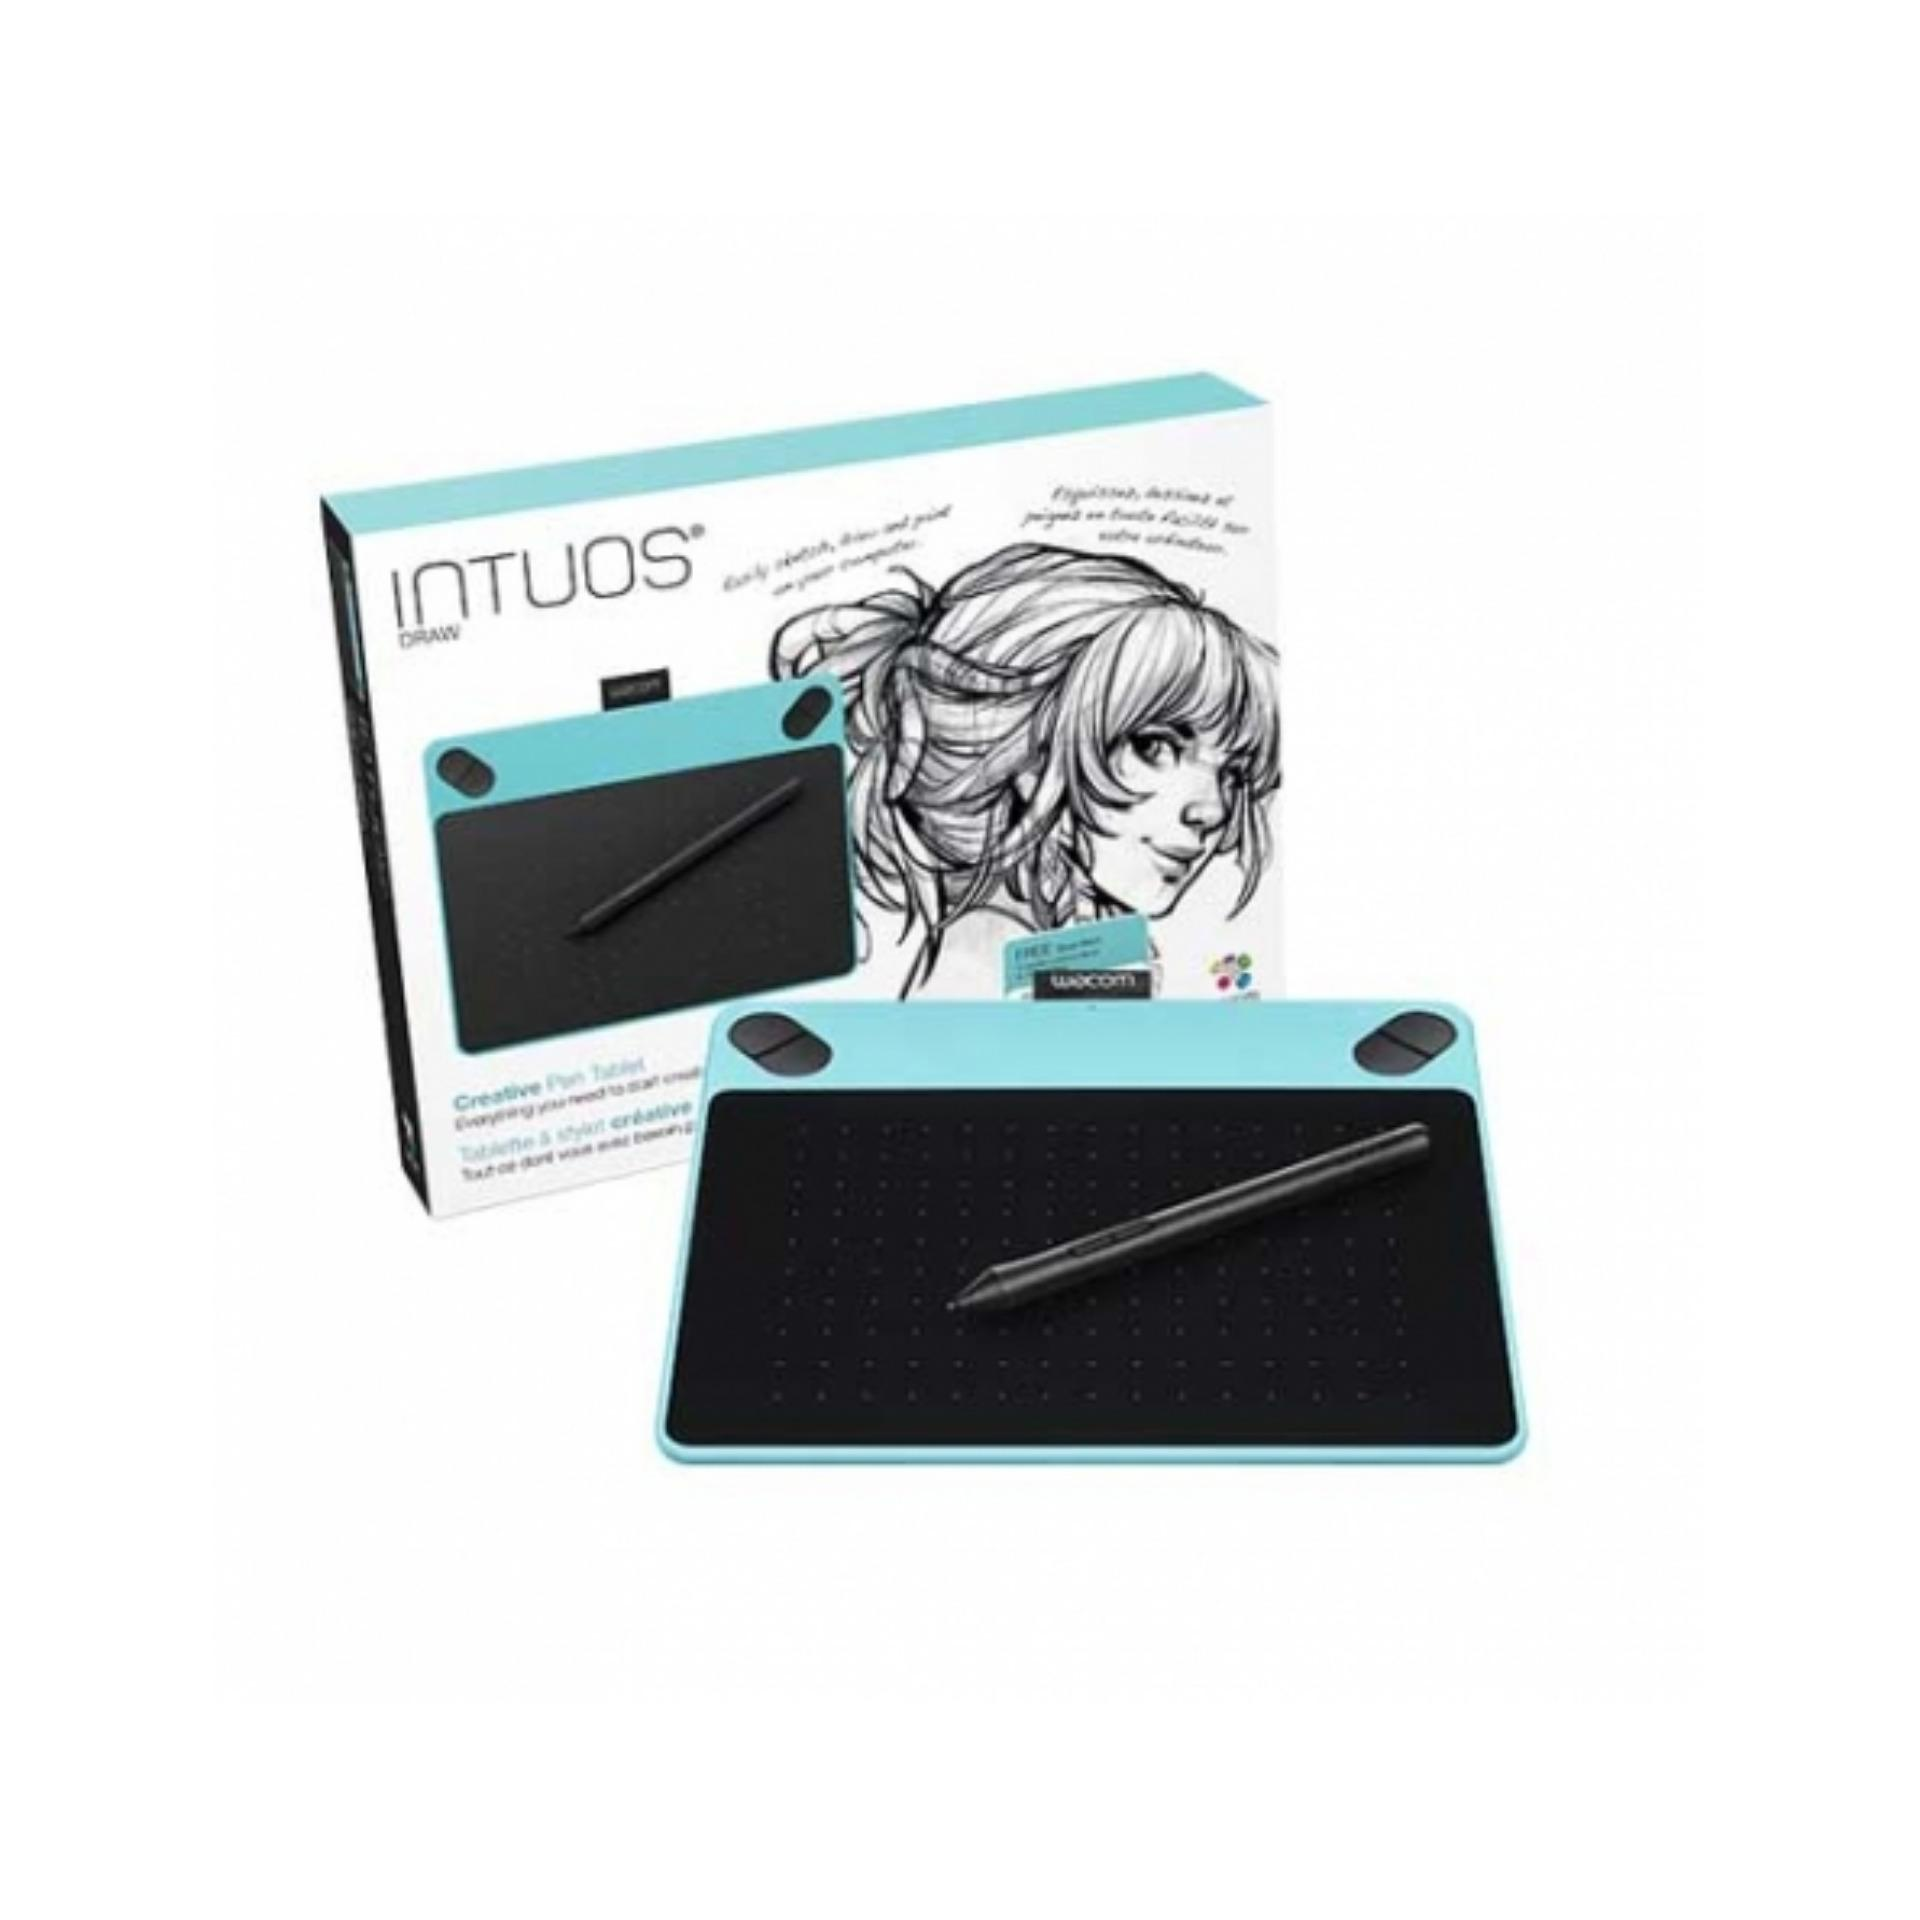 Harga Wacom Intuos Draw Ctl490 Pen Tablet White Blue Original